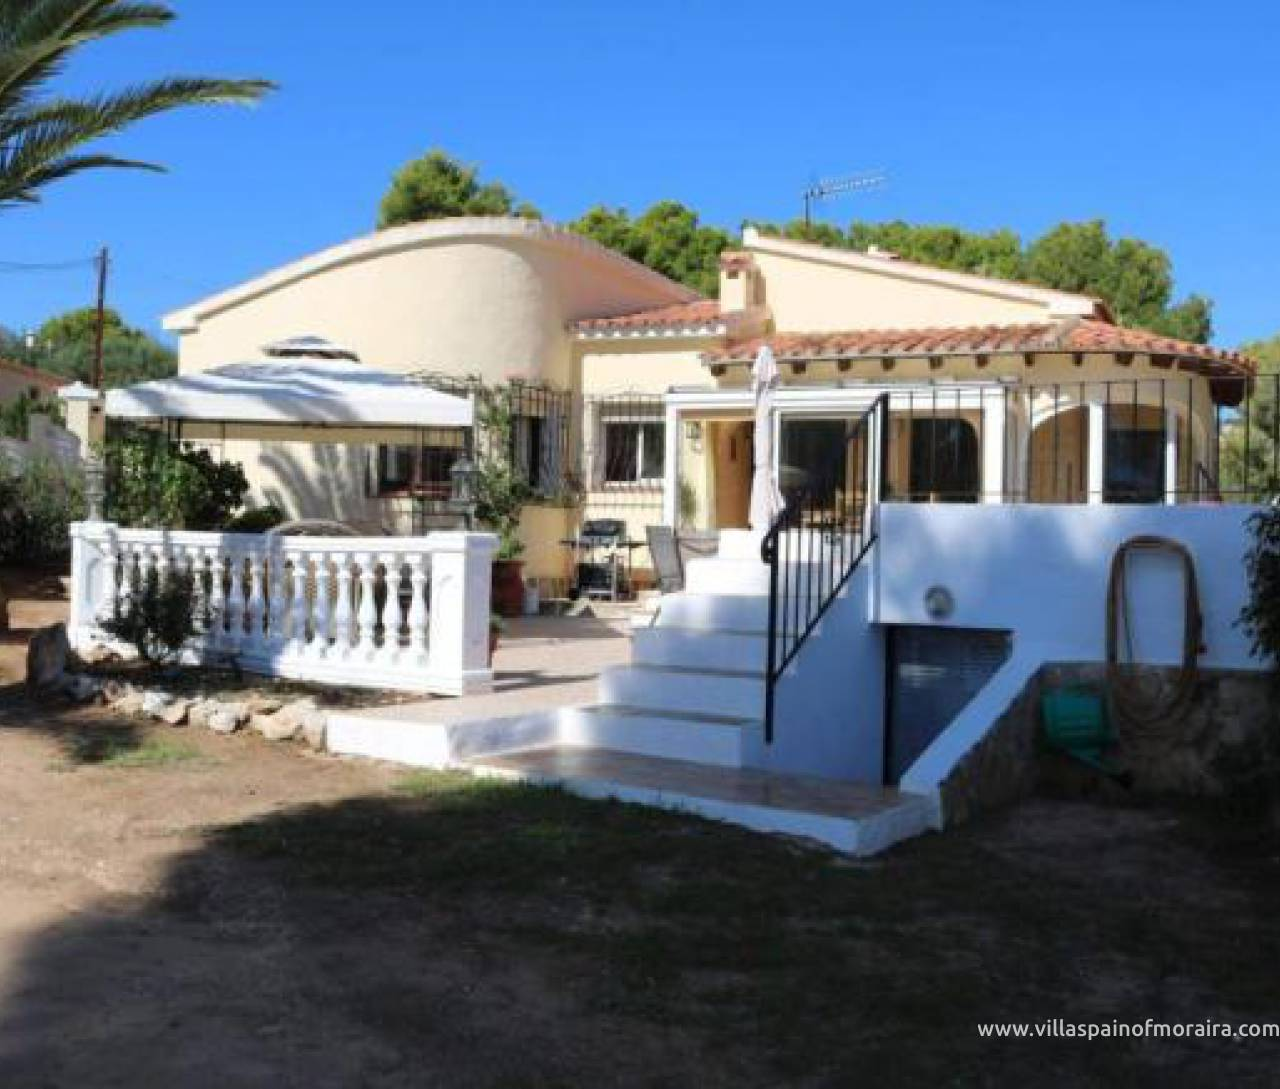 Villa in Cometa Moraira for sale